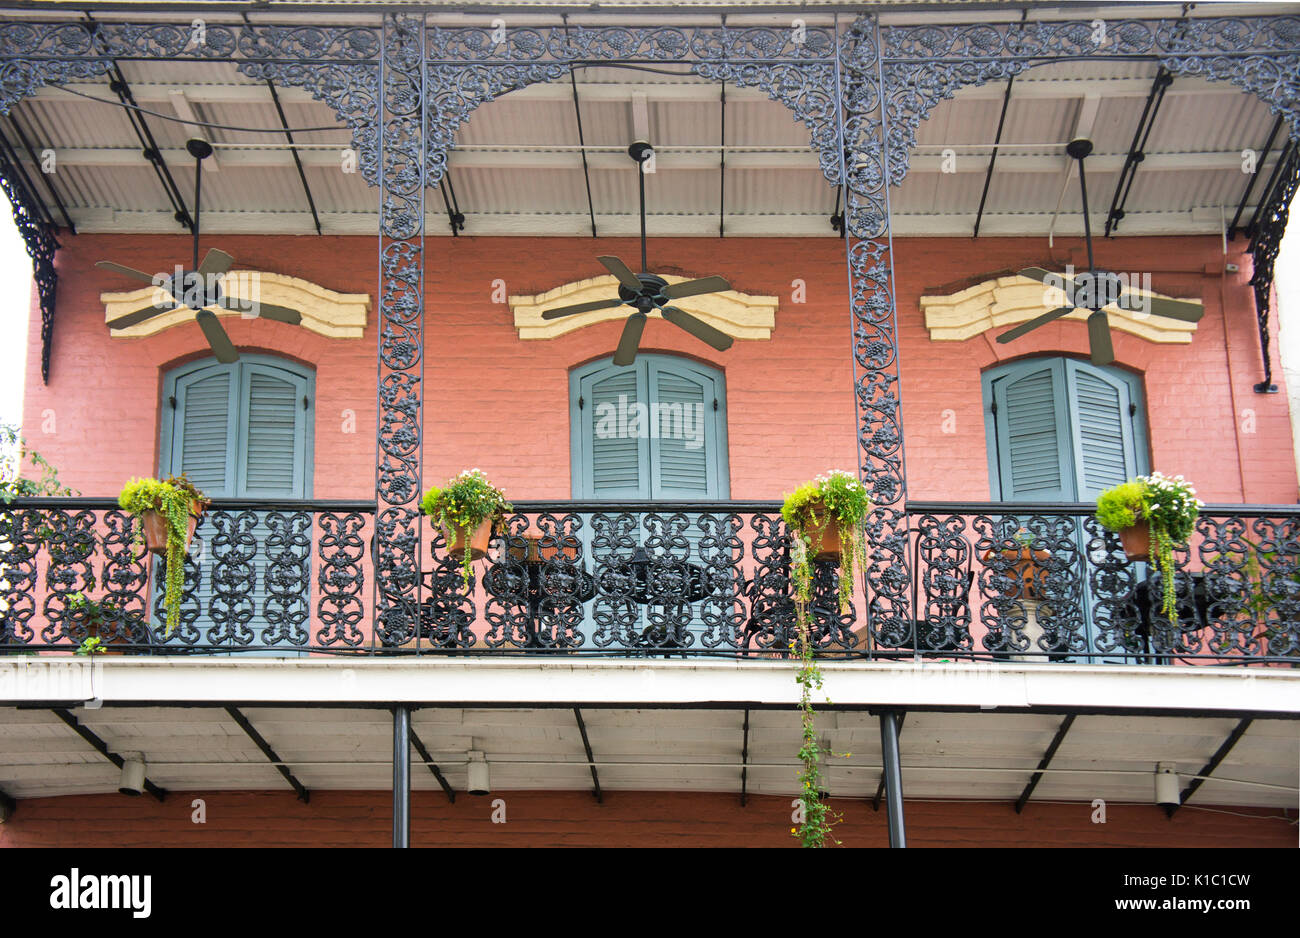 French quarter building with iron balcony and ceiling fans new french quarter building with iron balcony and ceiling fans new orleans la aloadofball Image collections